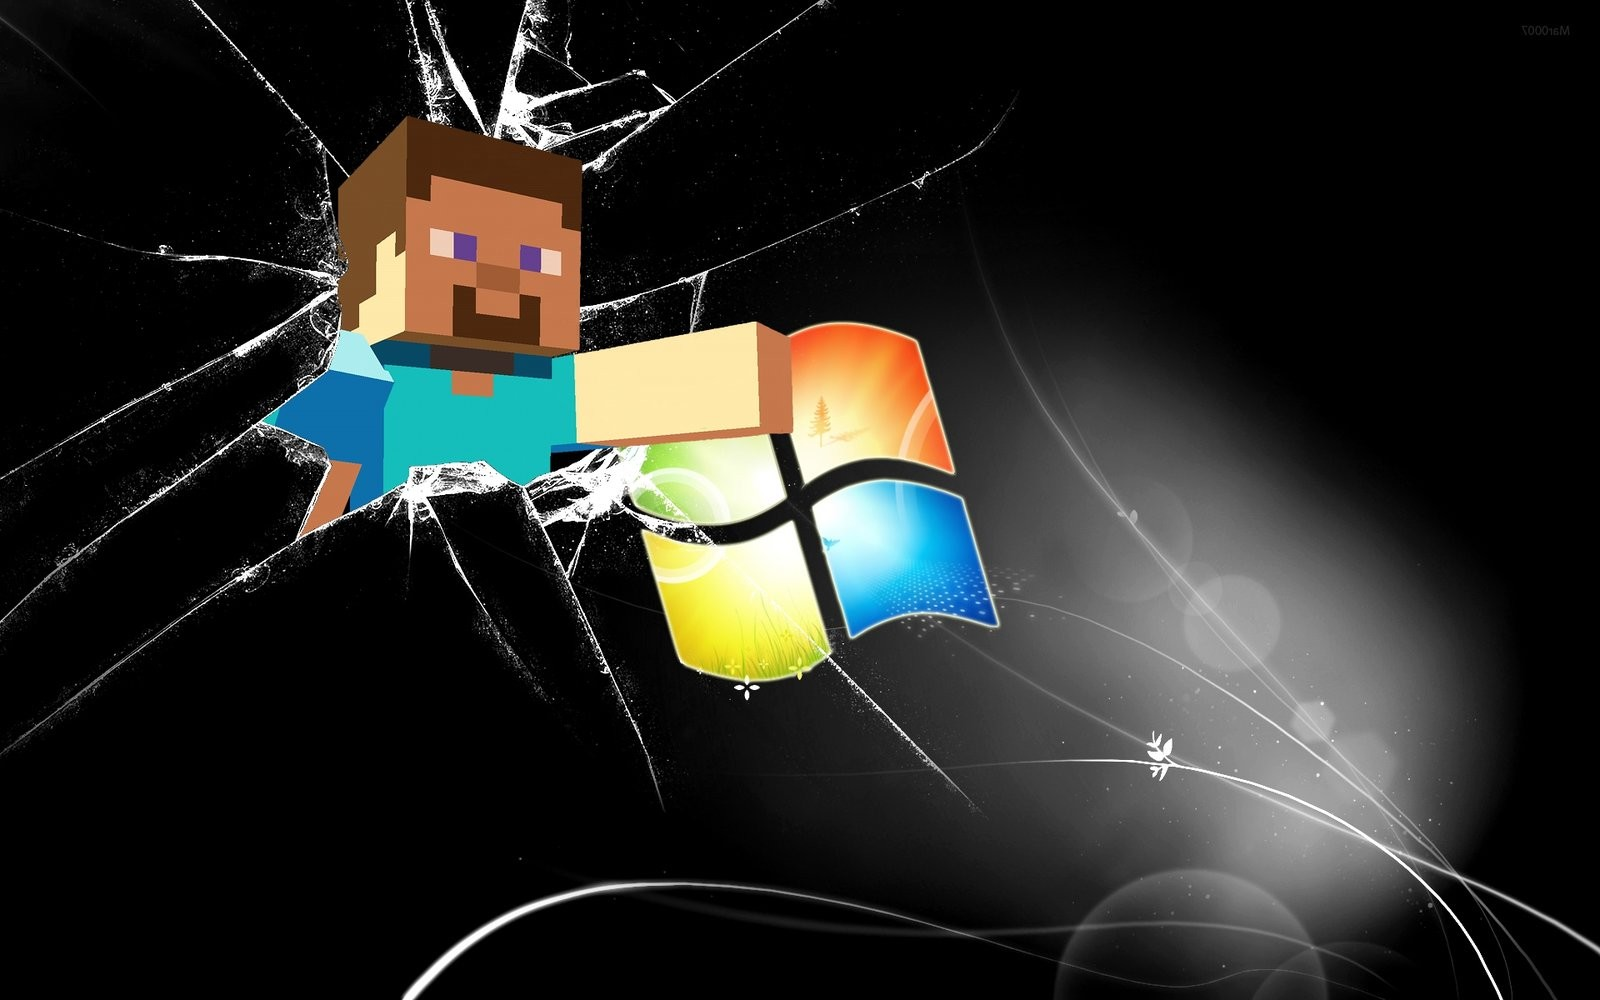 Creeper Wallpaper Hd Reasons Why Cracked Minecraft Is Harmful For Pc Security